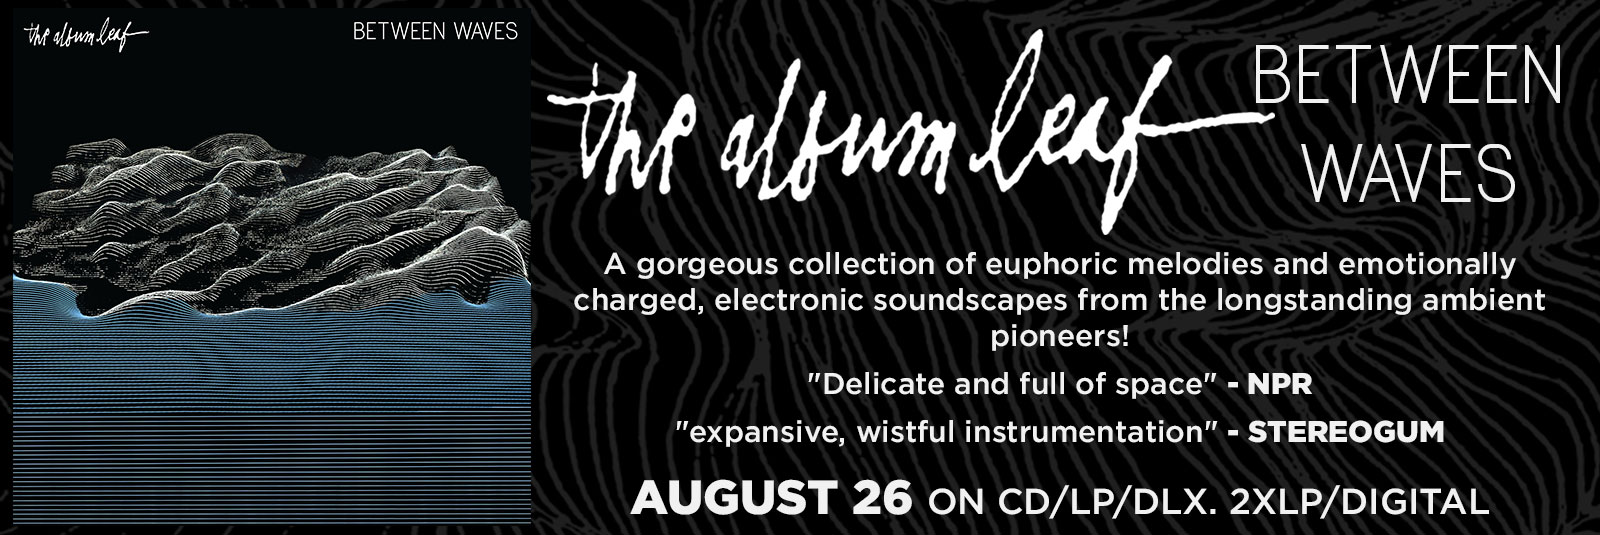 the-album-leaf-between-waves-lp-cd-merch